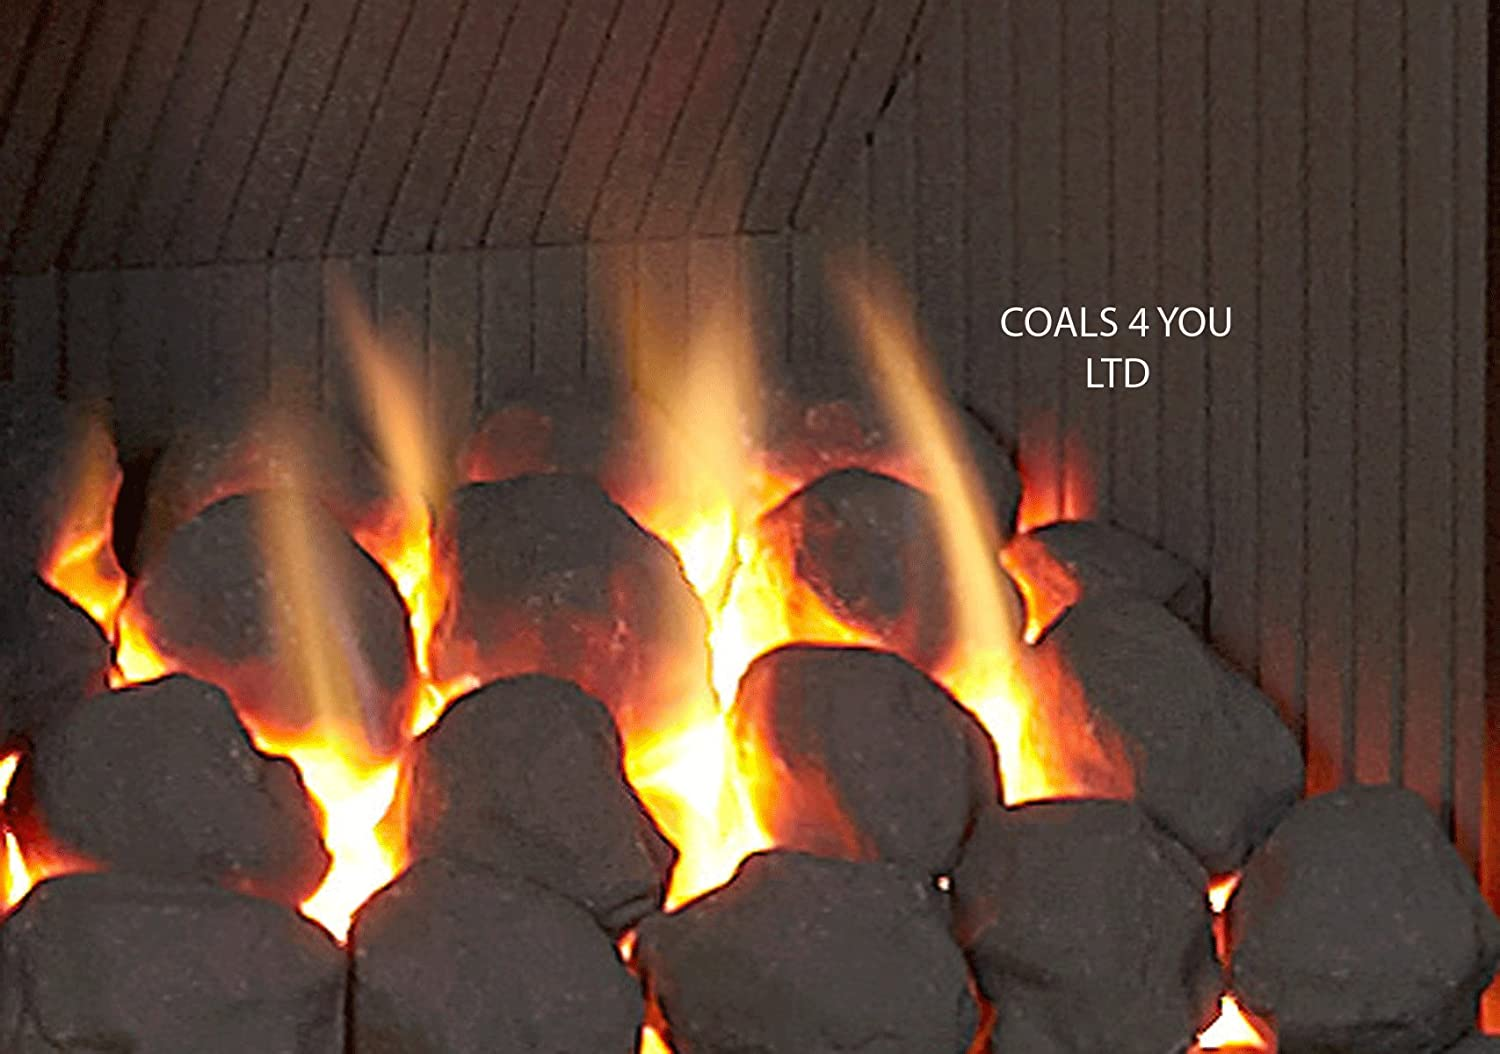 COALS 4 YOU 30 Gas Fire Ceramic Large Cast Coals Replacement Replacements/Bio Fuels/Ceramic/Boxed IN PACKING